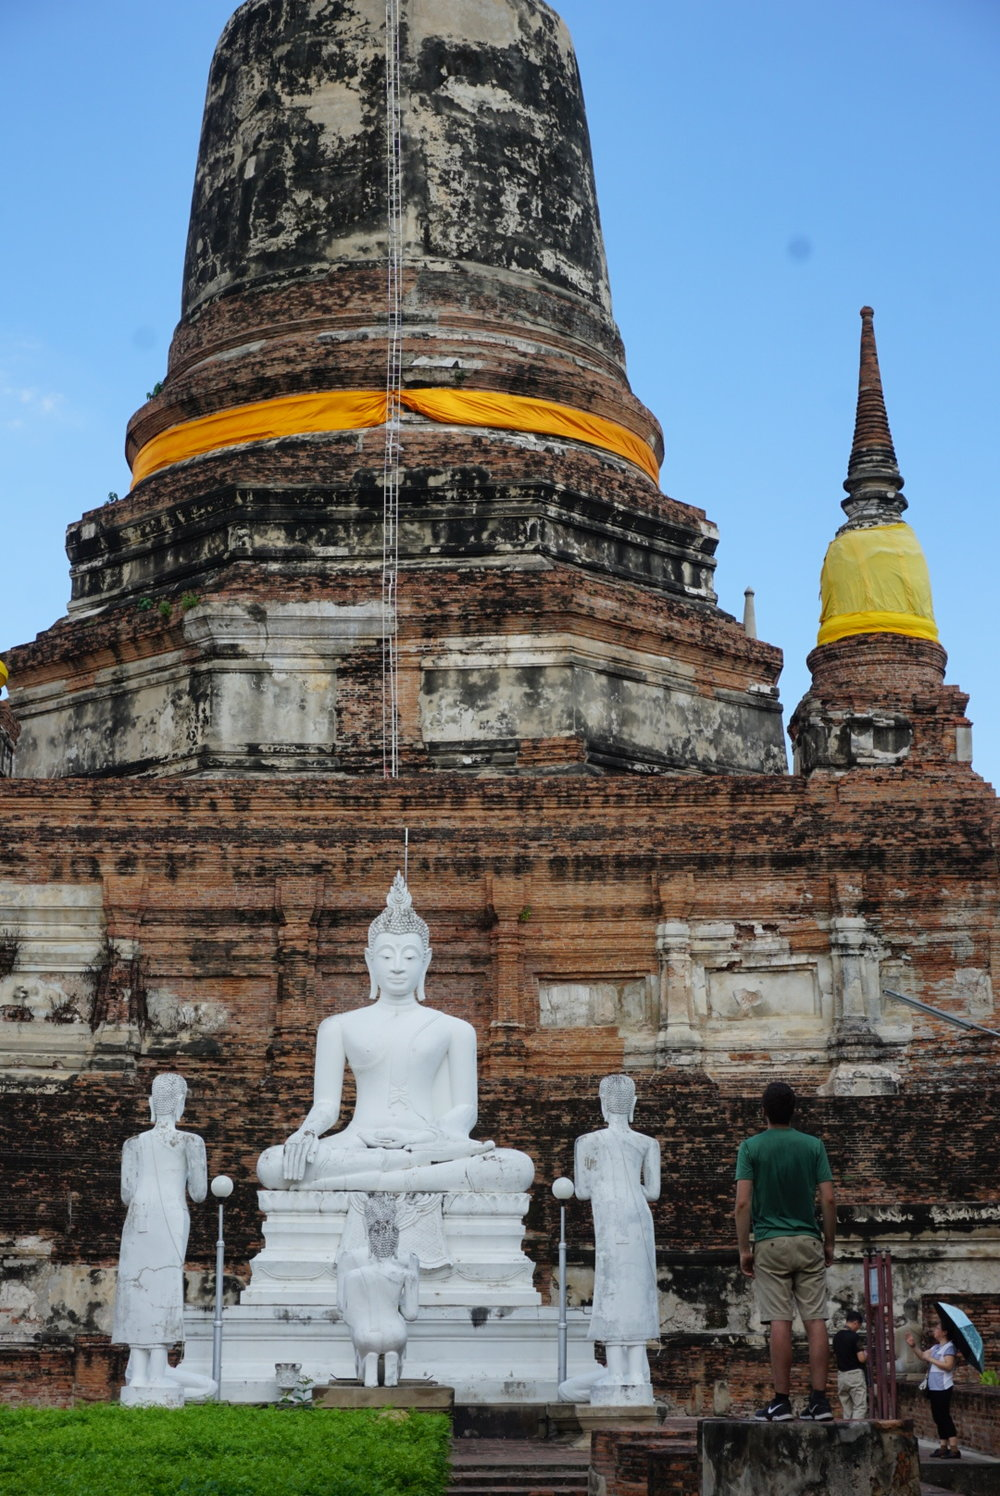 Exploring temples on a day trip to Ayutthaya, Thailand